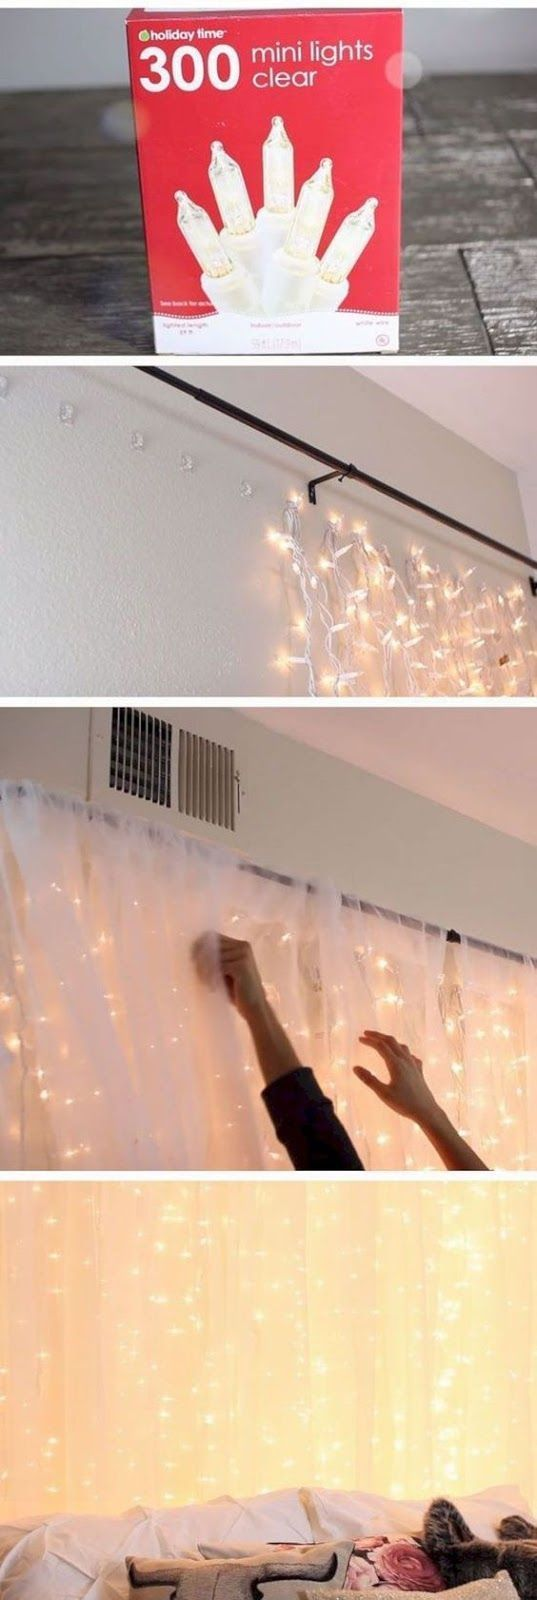 14 DIY Home Decor auf einem Budget Apartment Ideen,  #Apartment #auf #Budget #Decor #DIY #diy... #decoratingsmalllivingroom